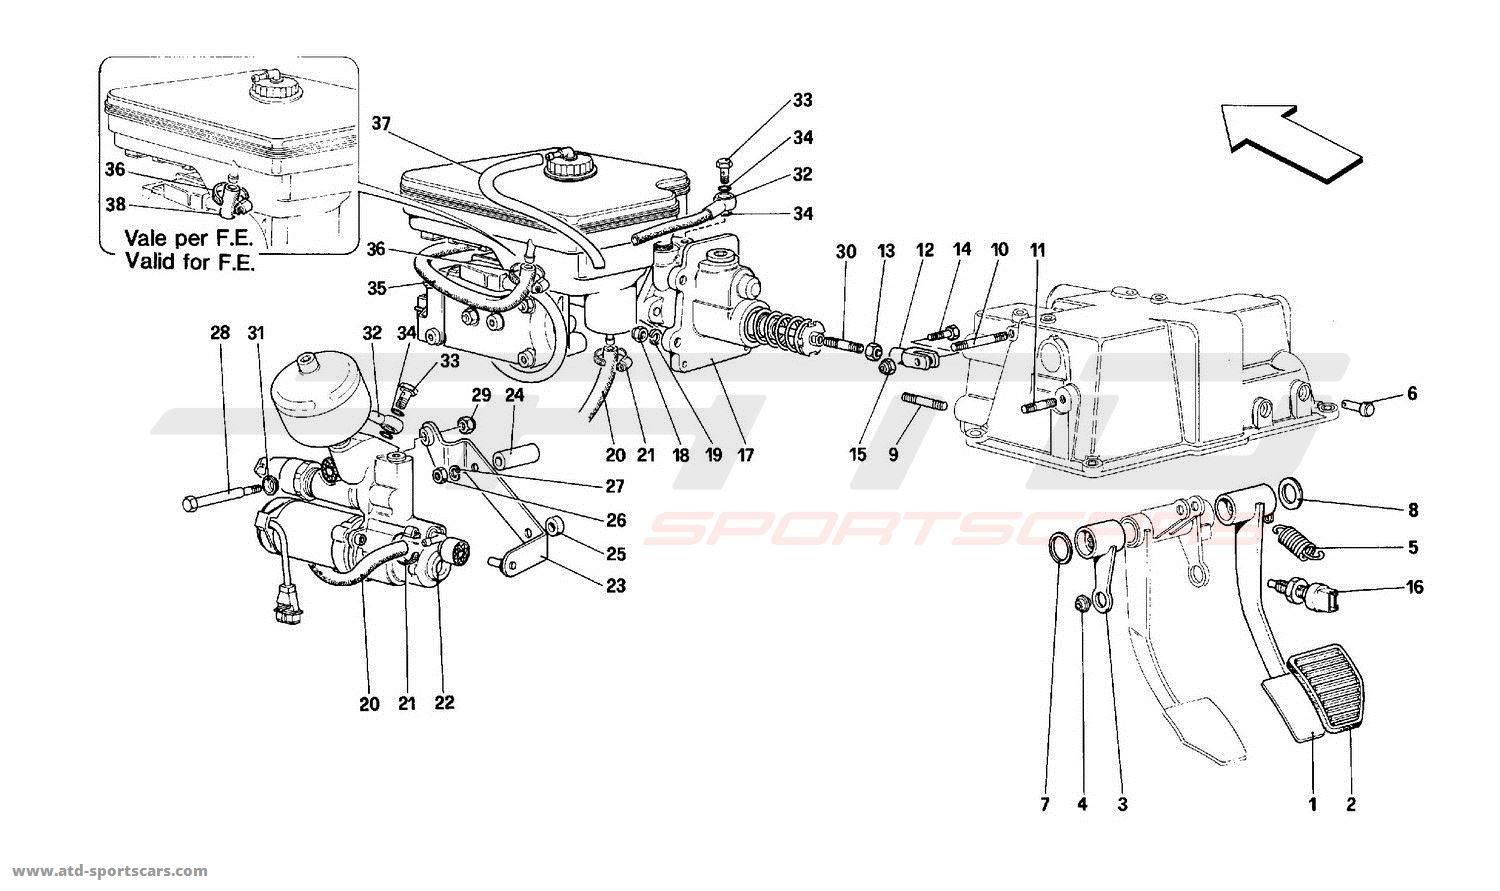 Wiring Diagram Ferrari 308 Electrical Ferrari 308 Timing